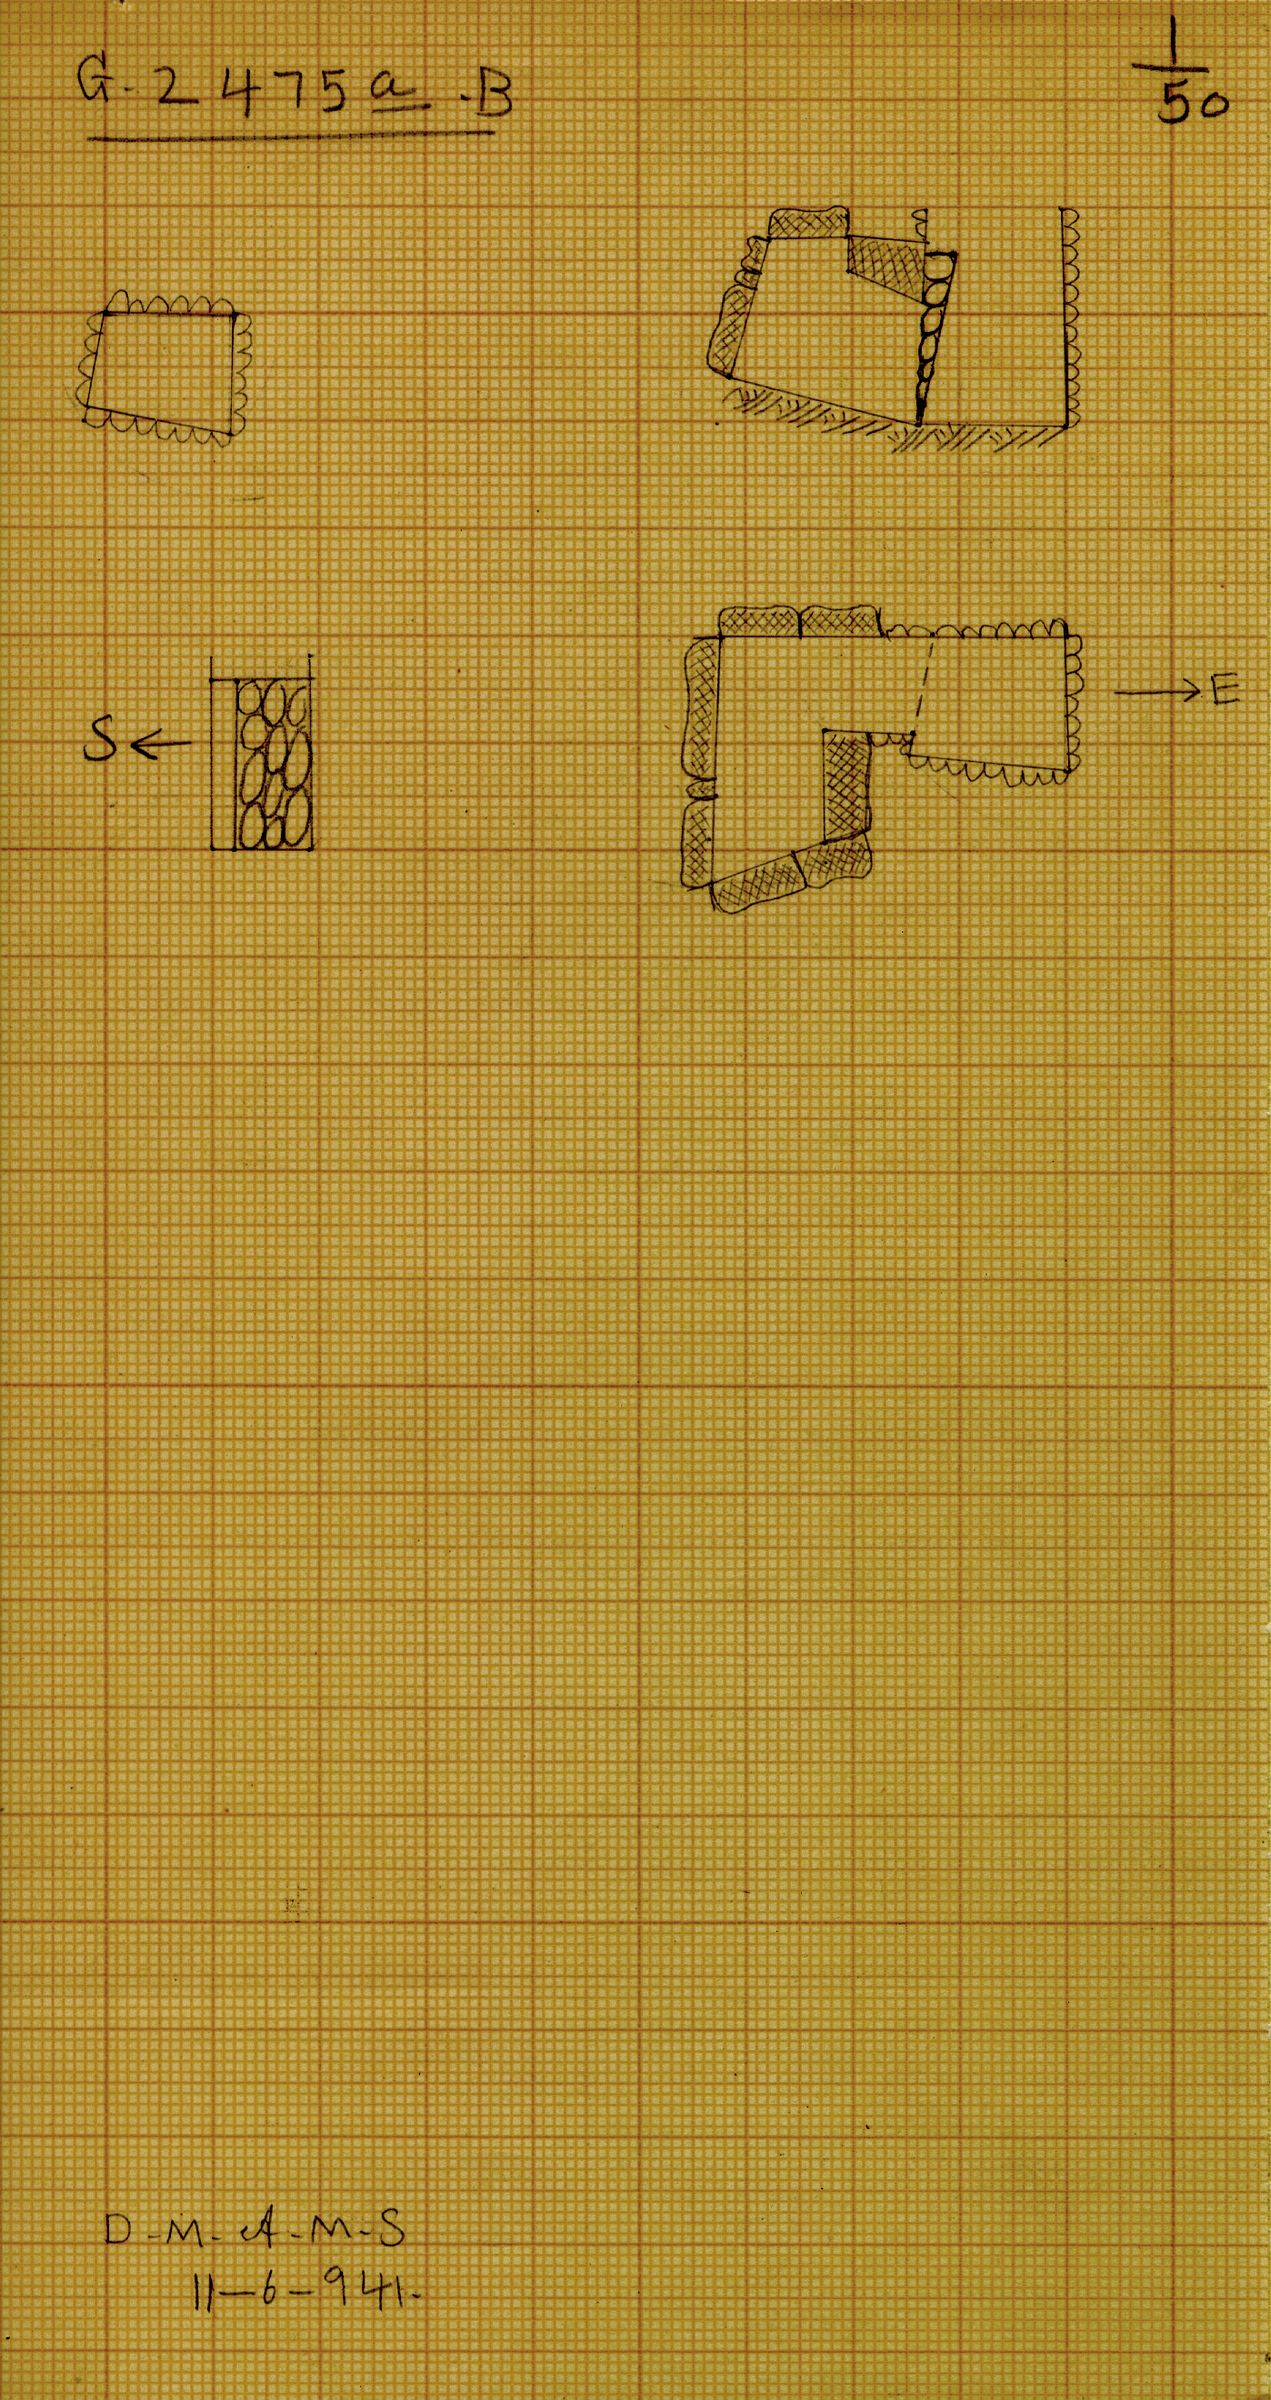 Maps and plans: G 2475a, Shaft B